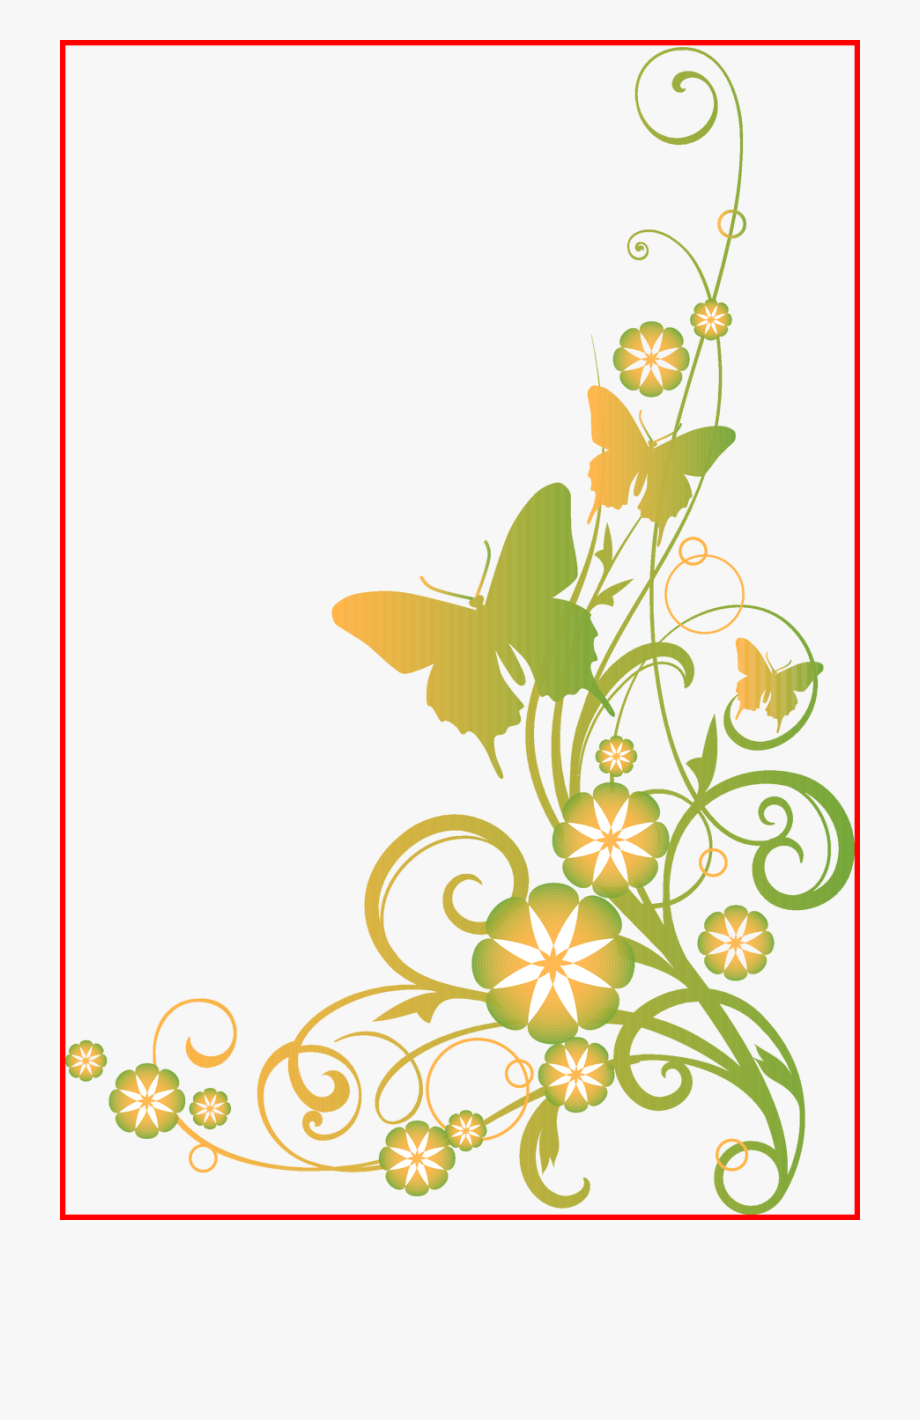 Inspiring Religious Clip Art And Butterflies Christian.